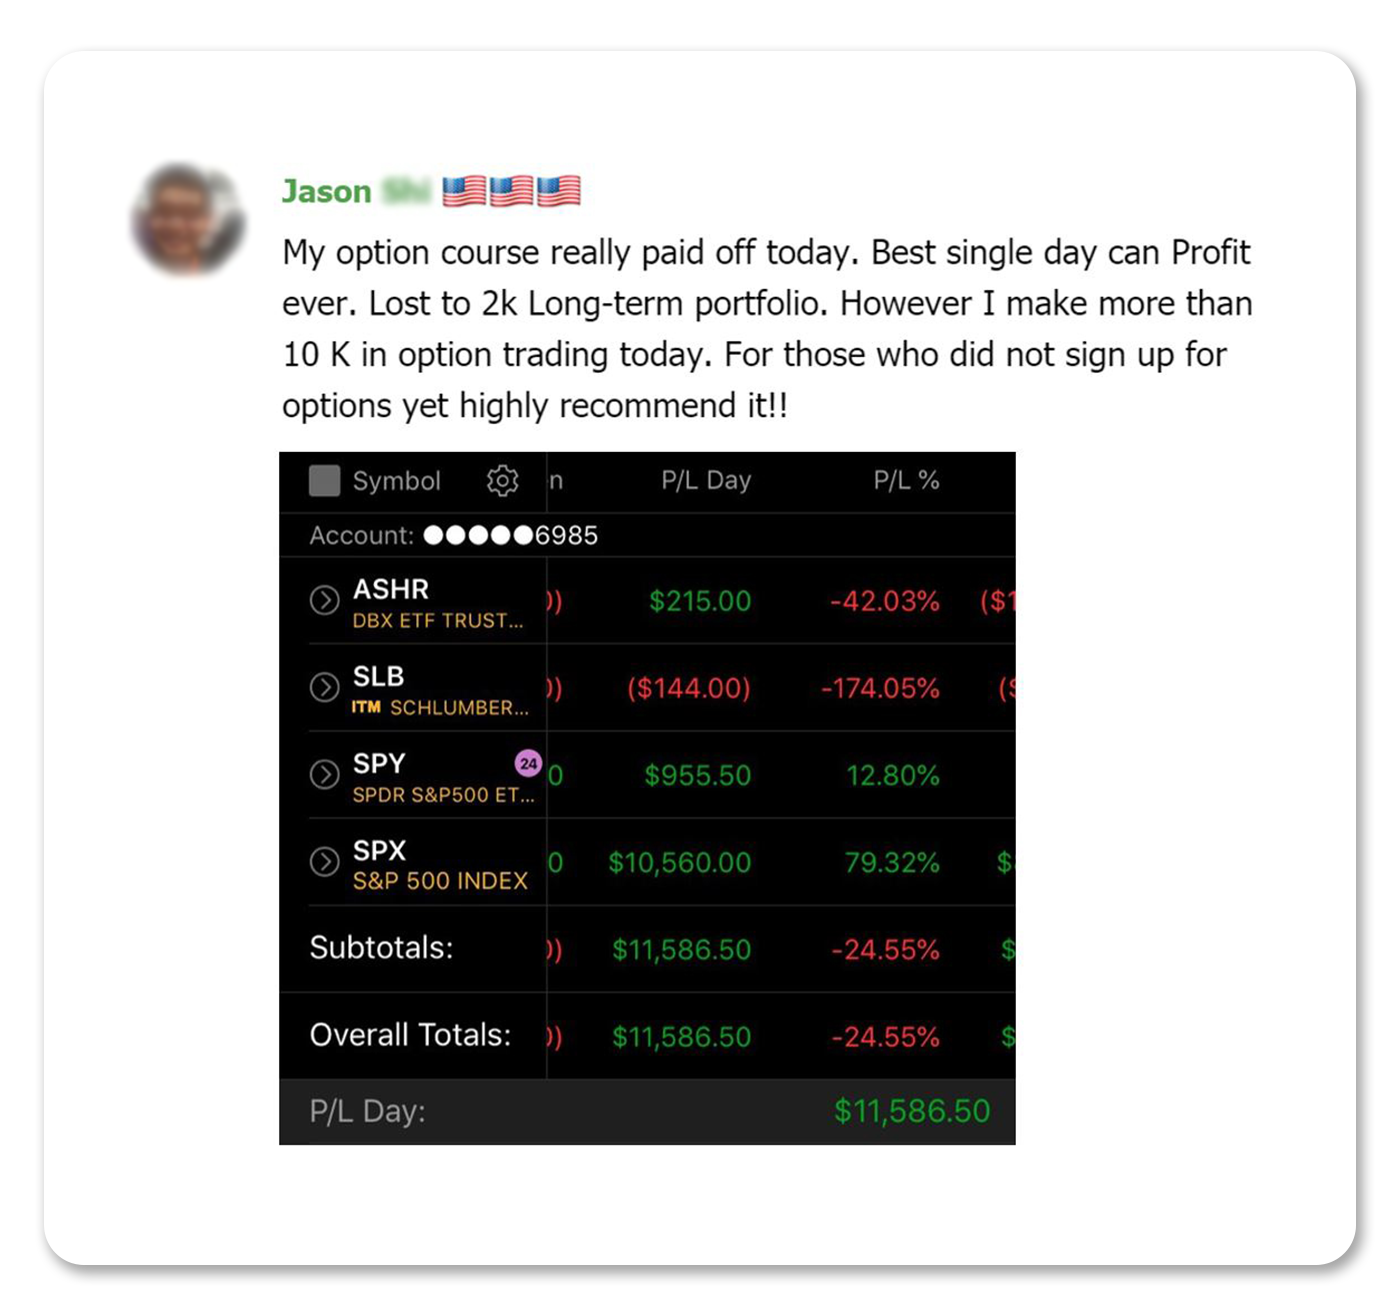 options-trading-course-review-jason